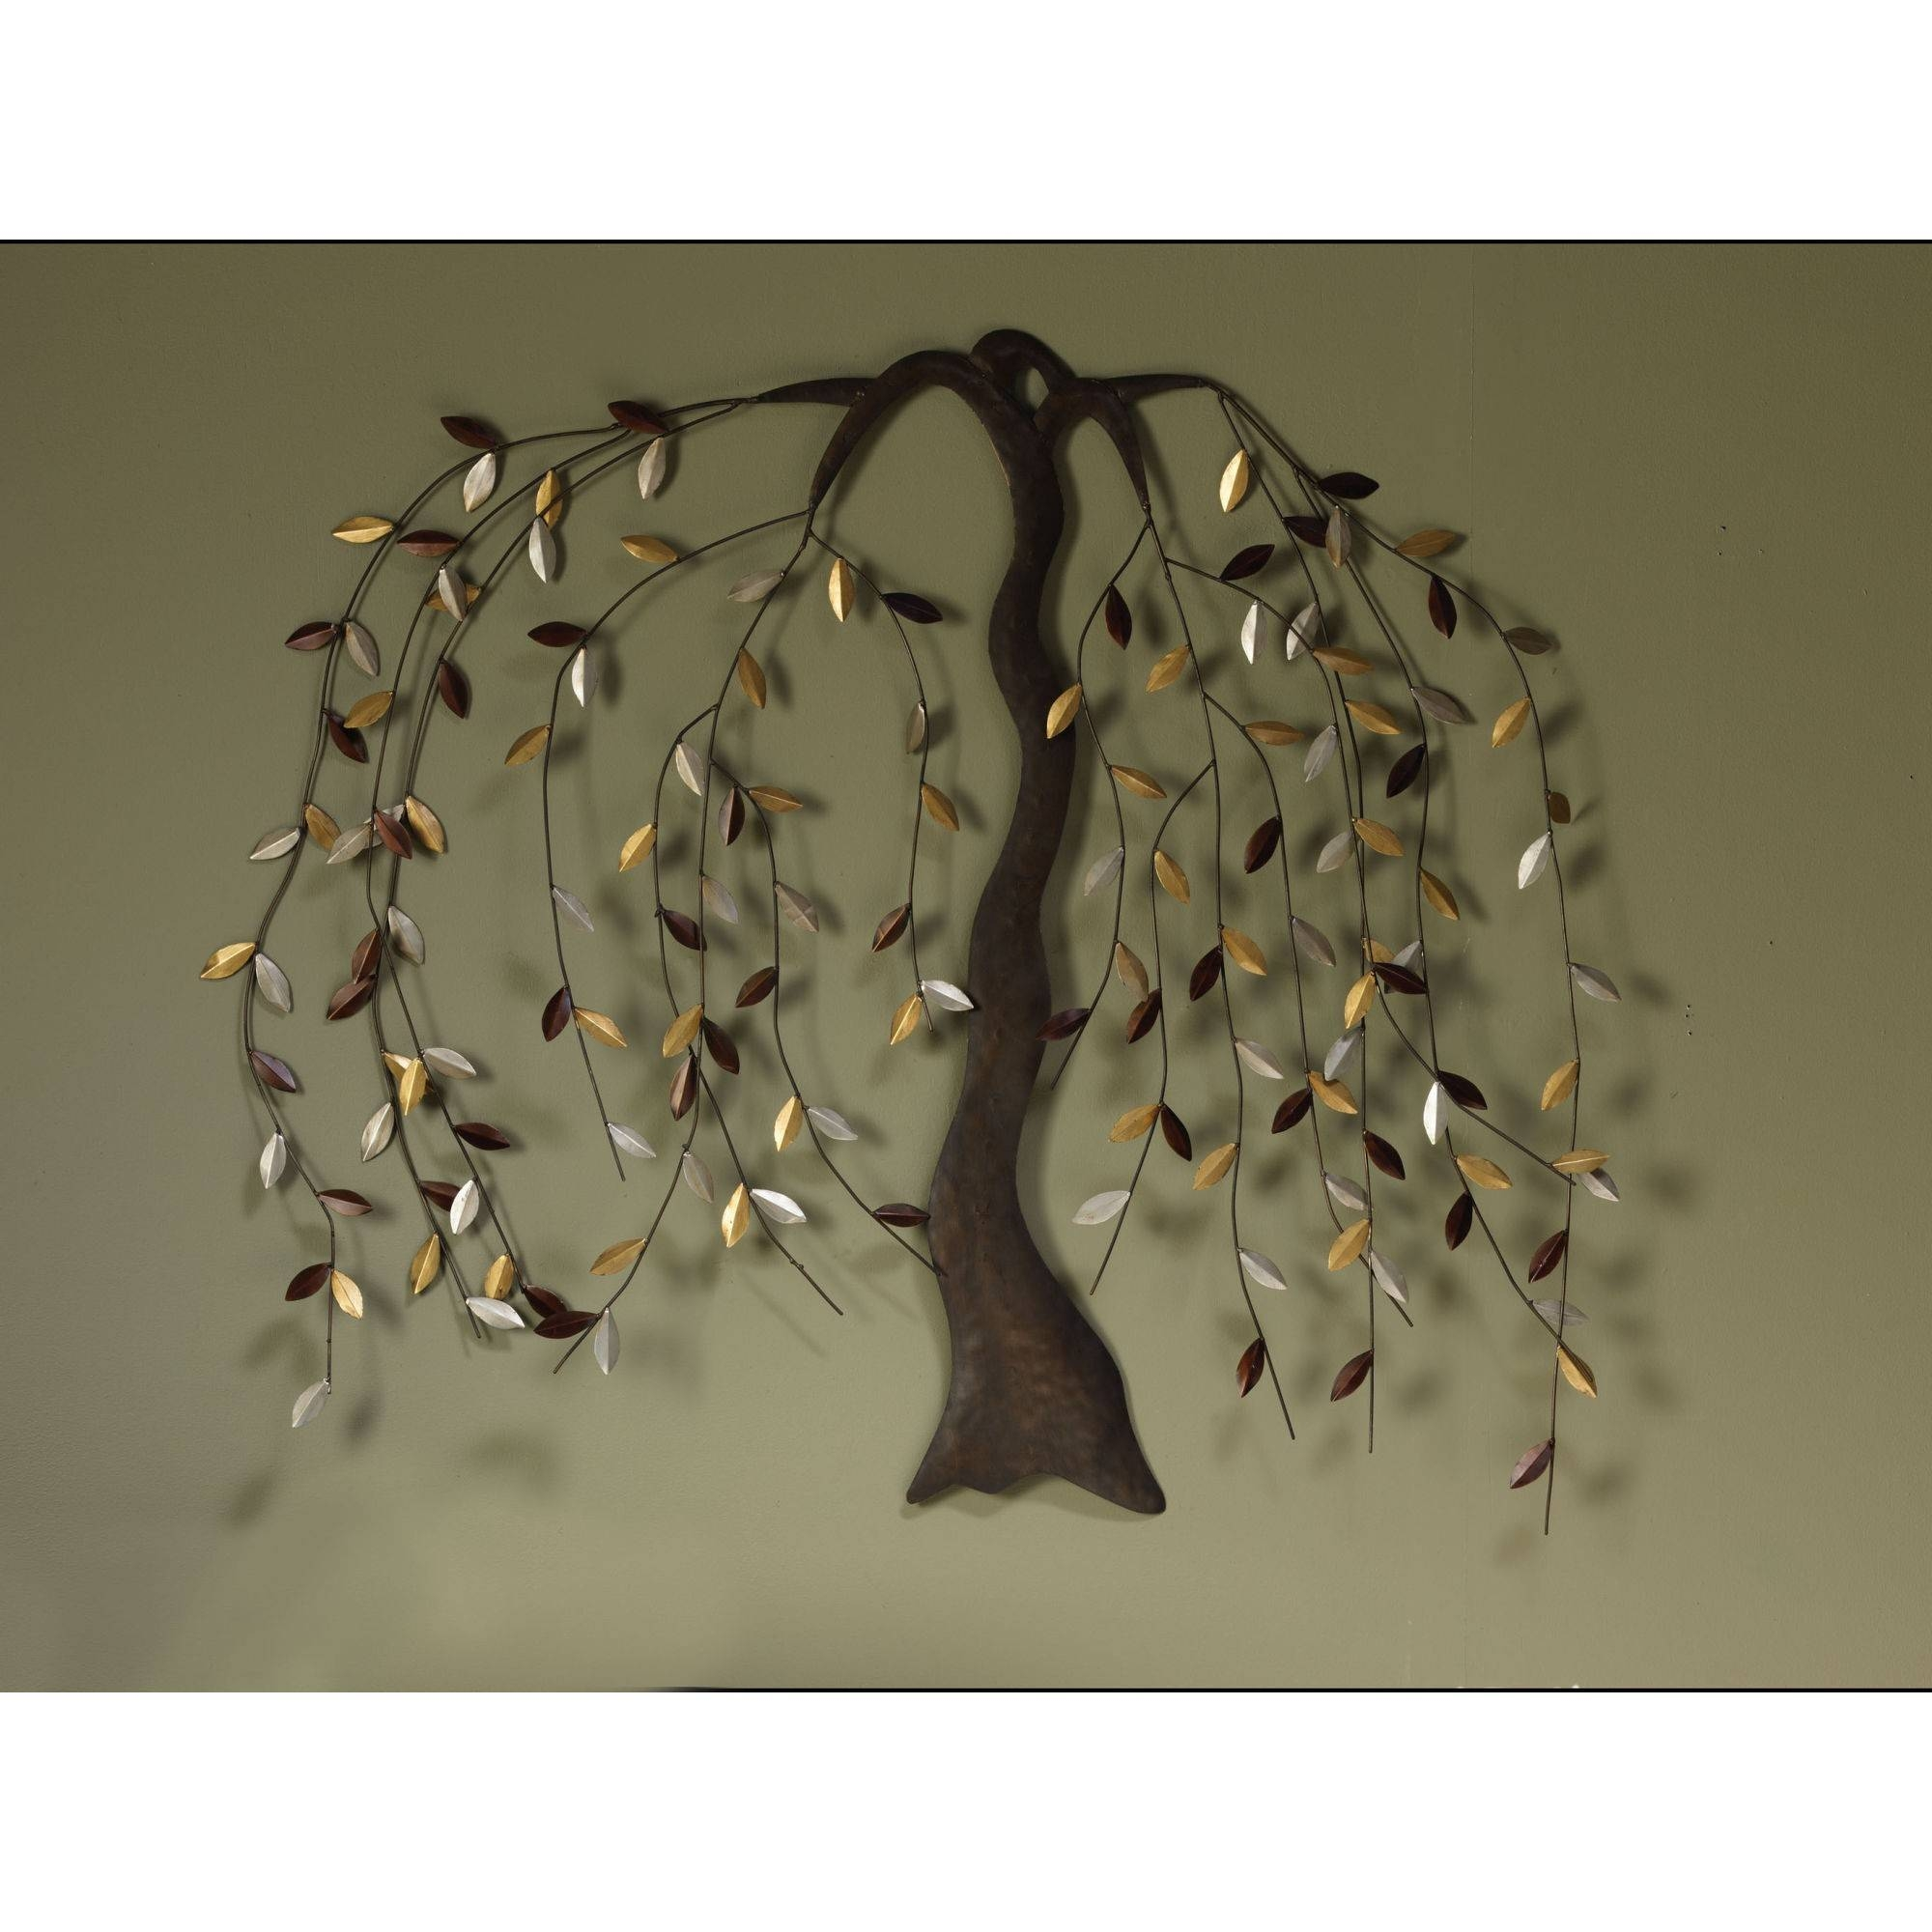 Exciting Natural Tree Of Life Metal Wall Art Decor Sculpture With Regard To 2017 Large Metal Wall Art Sculptures (Gallery 18 of 20)